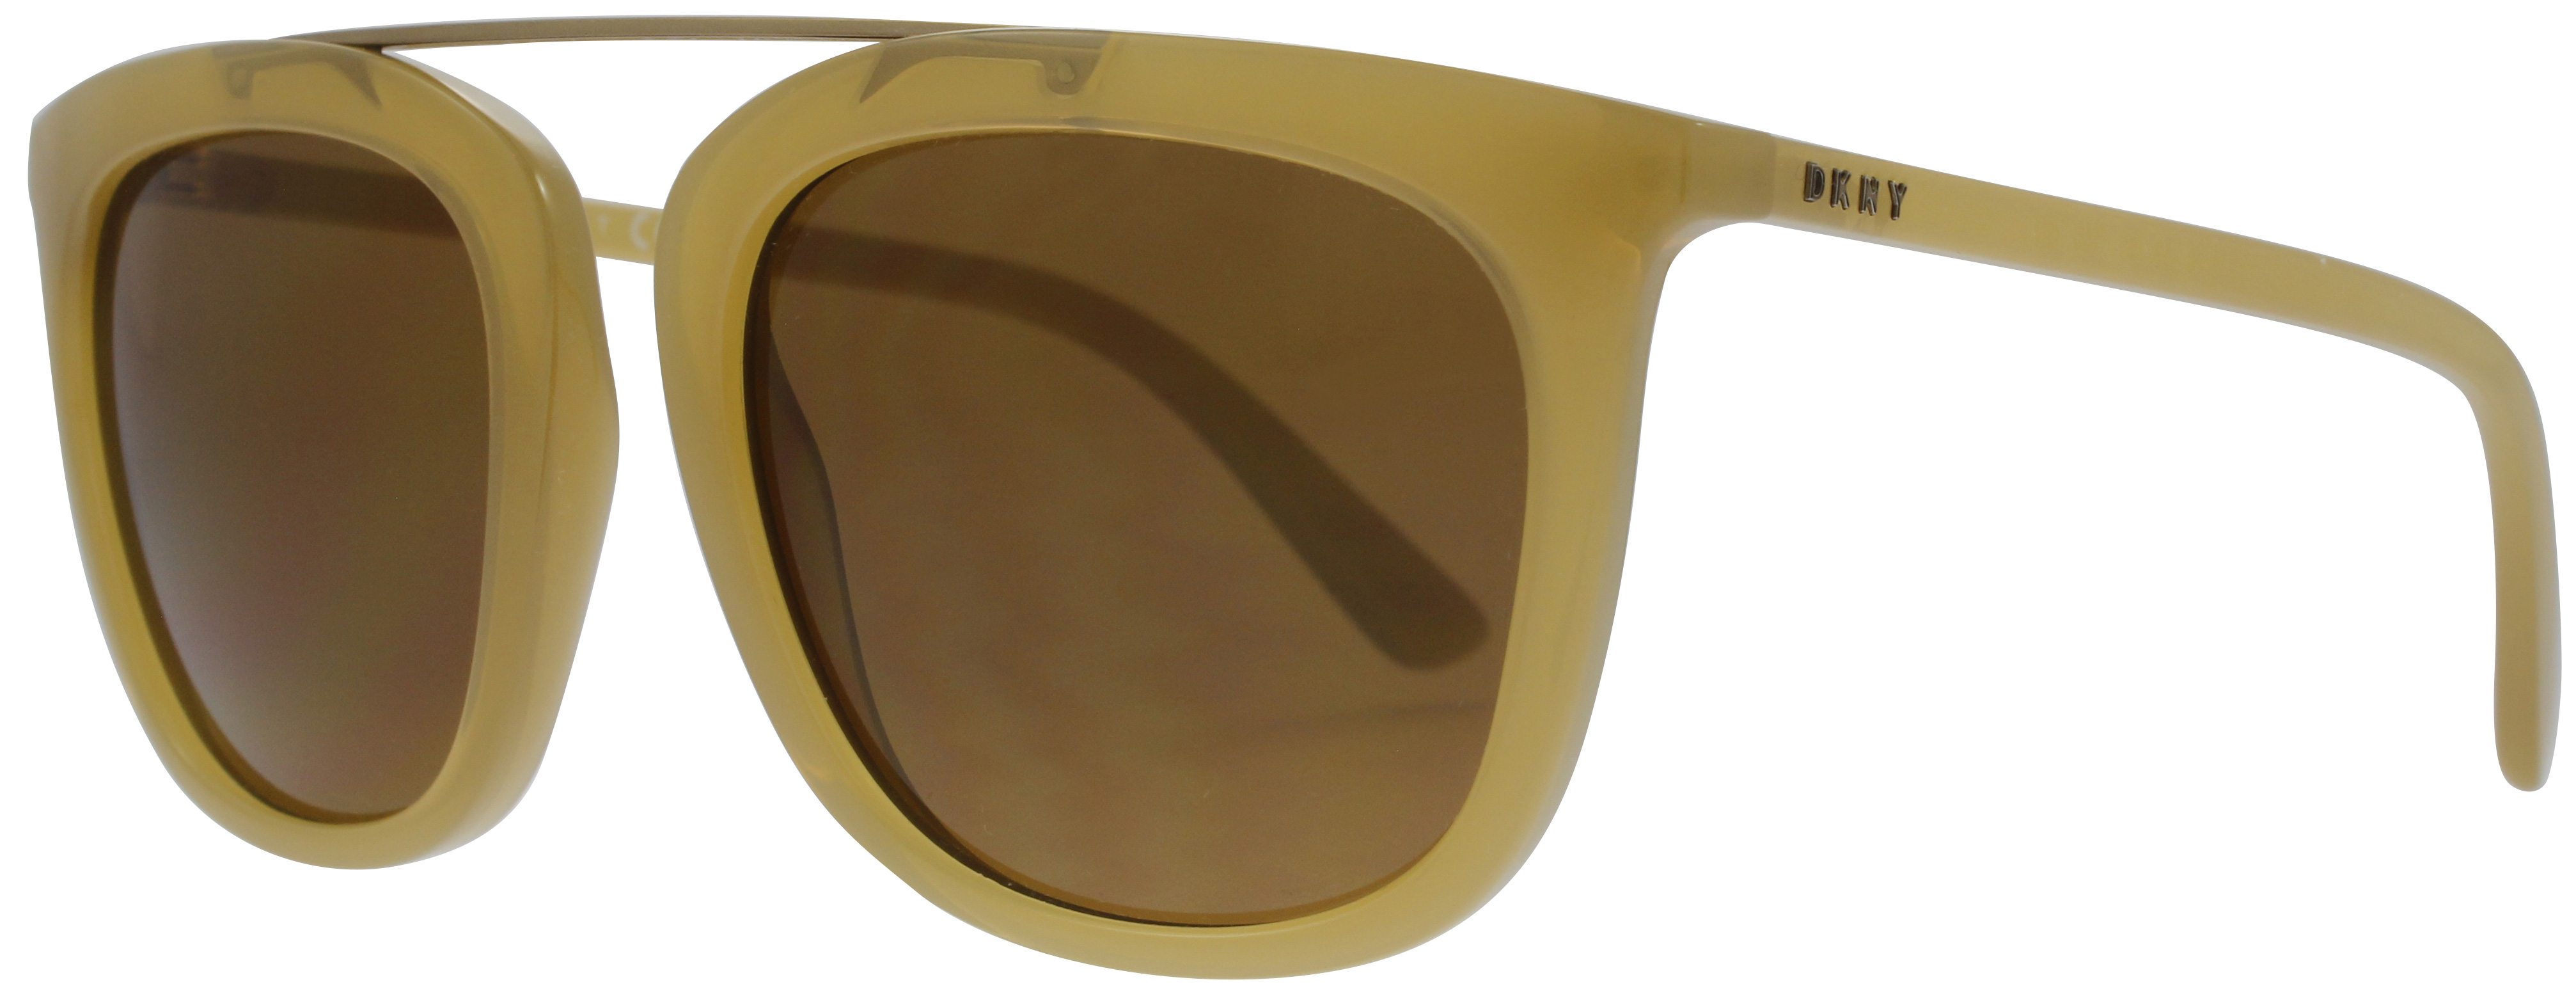 DKNY DY4146 Sonnenbrille Braungelb 3733/73 53mm Je4ht